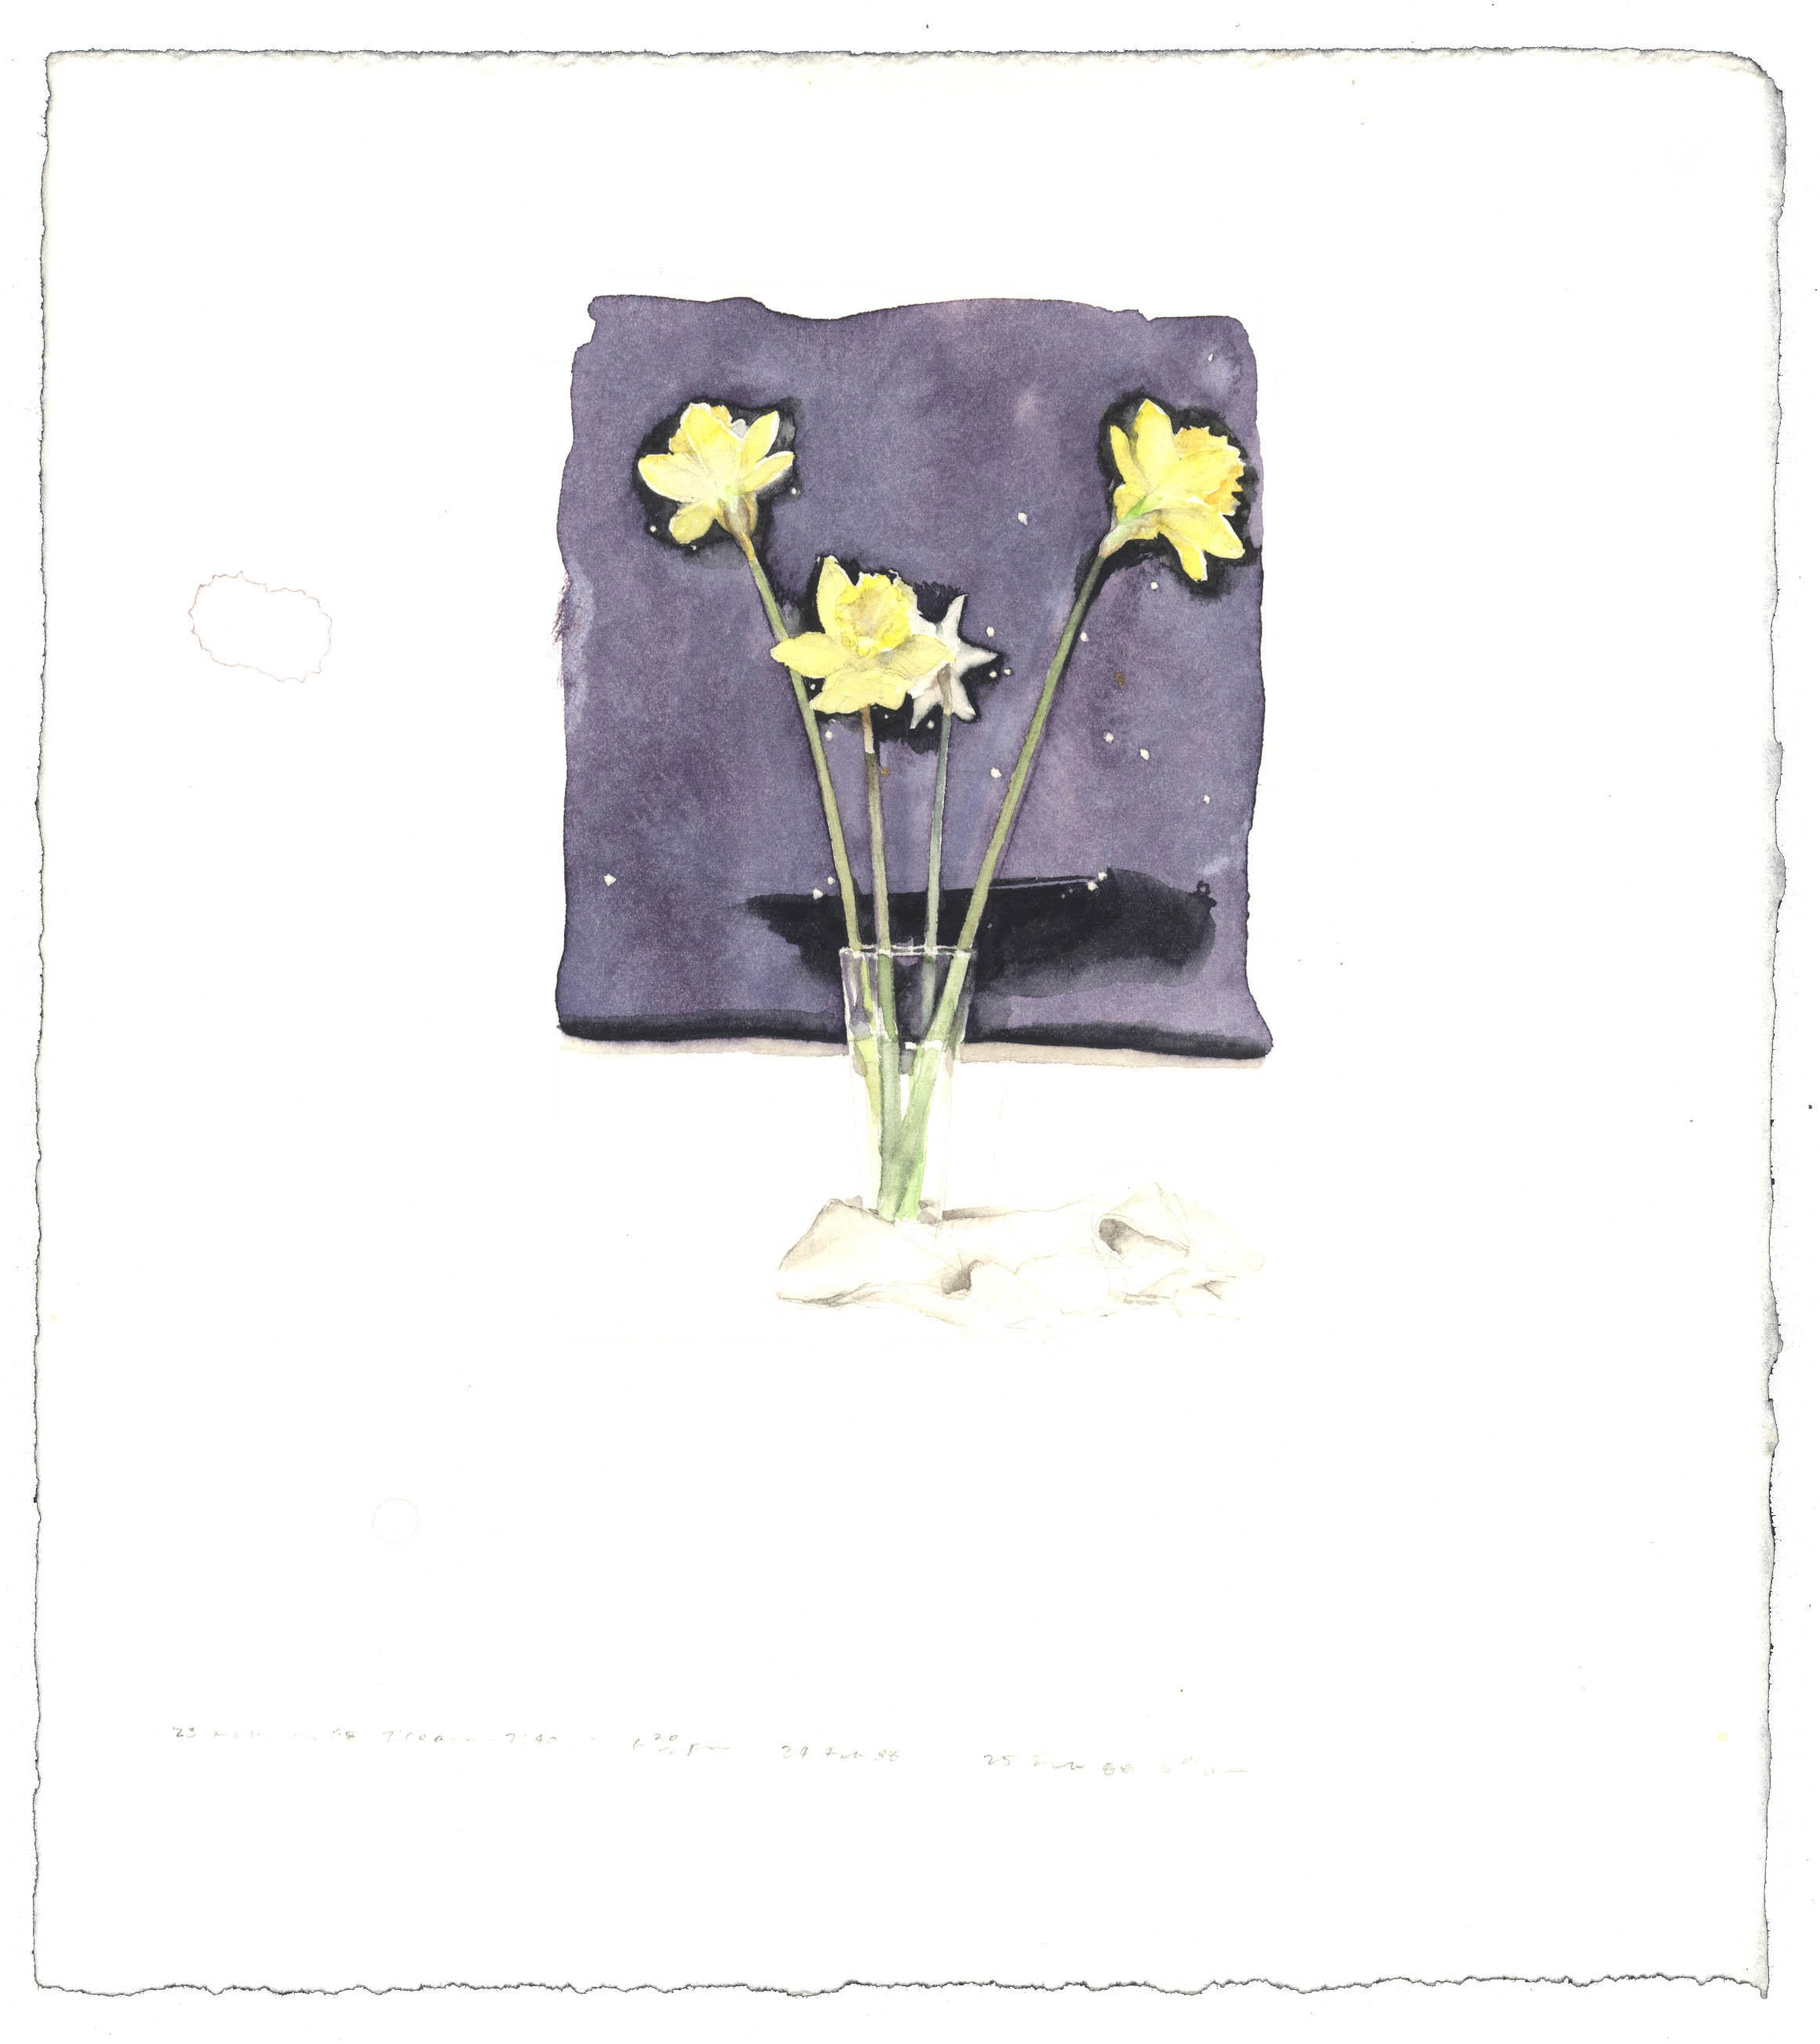 Daffodils with Star Map image